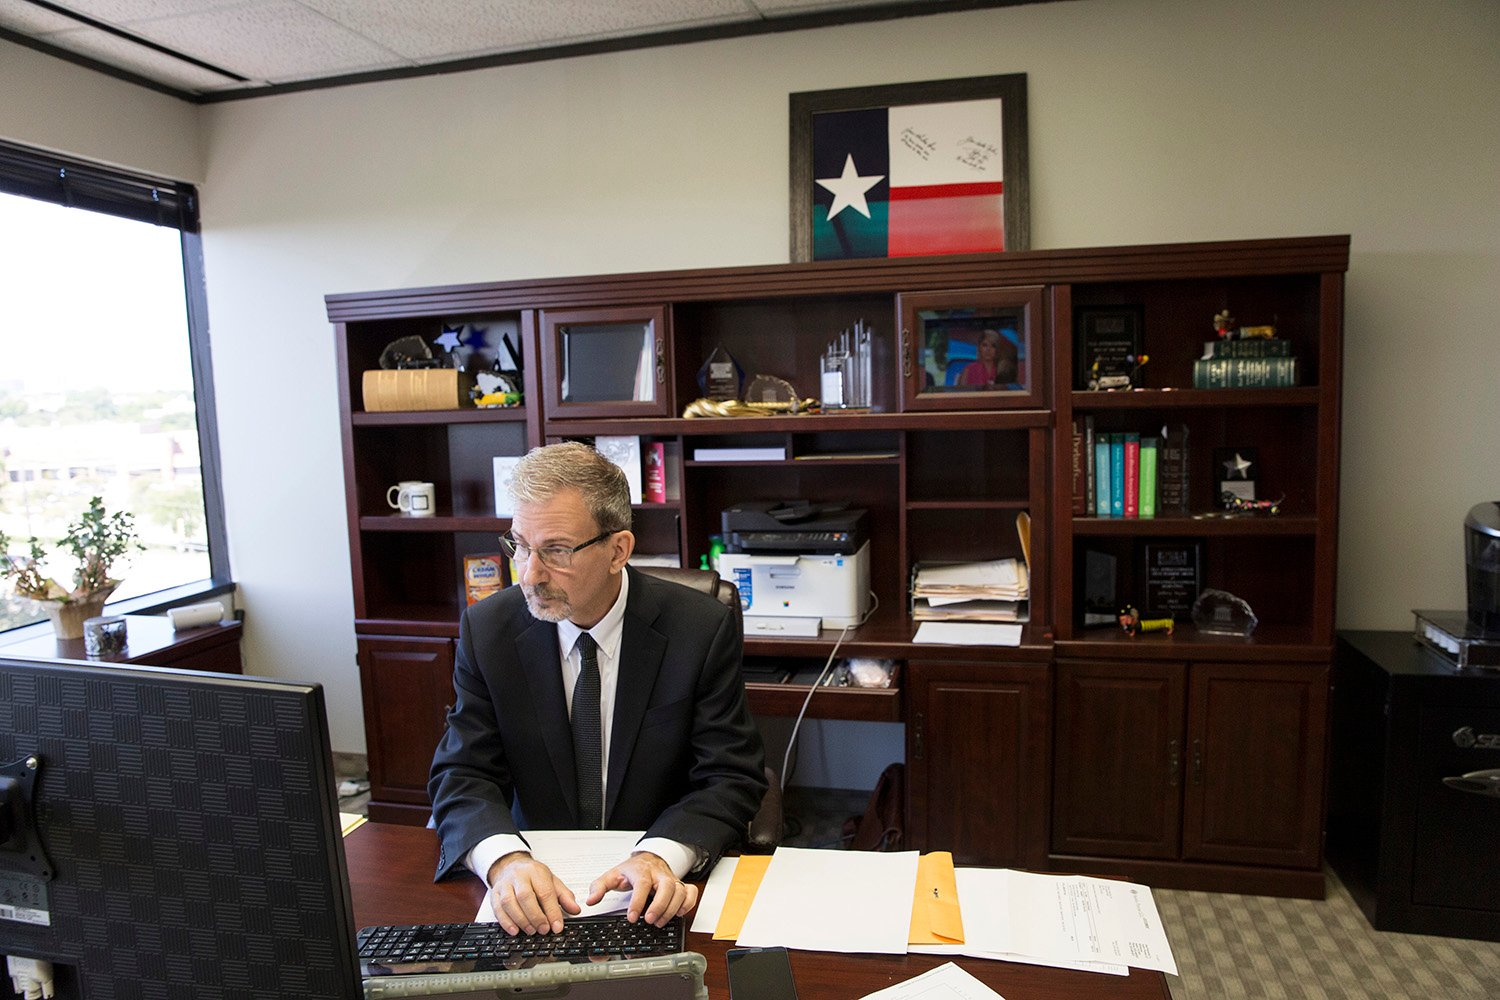 Jeffrey Payne, a Dallas-based businessman and Democrat, at his office in Dallas, Texas.